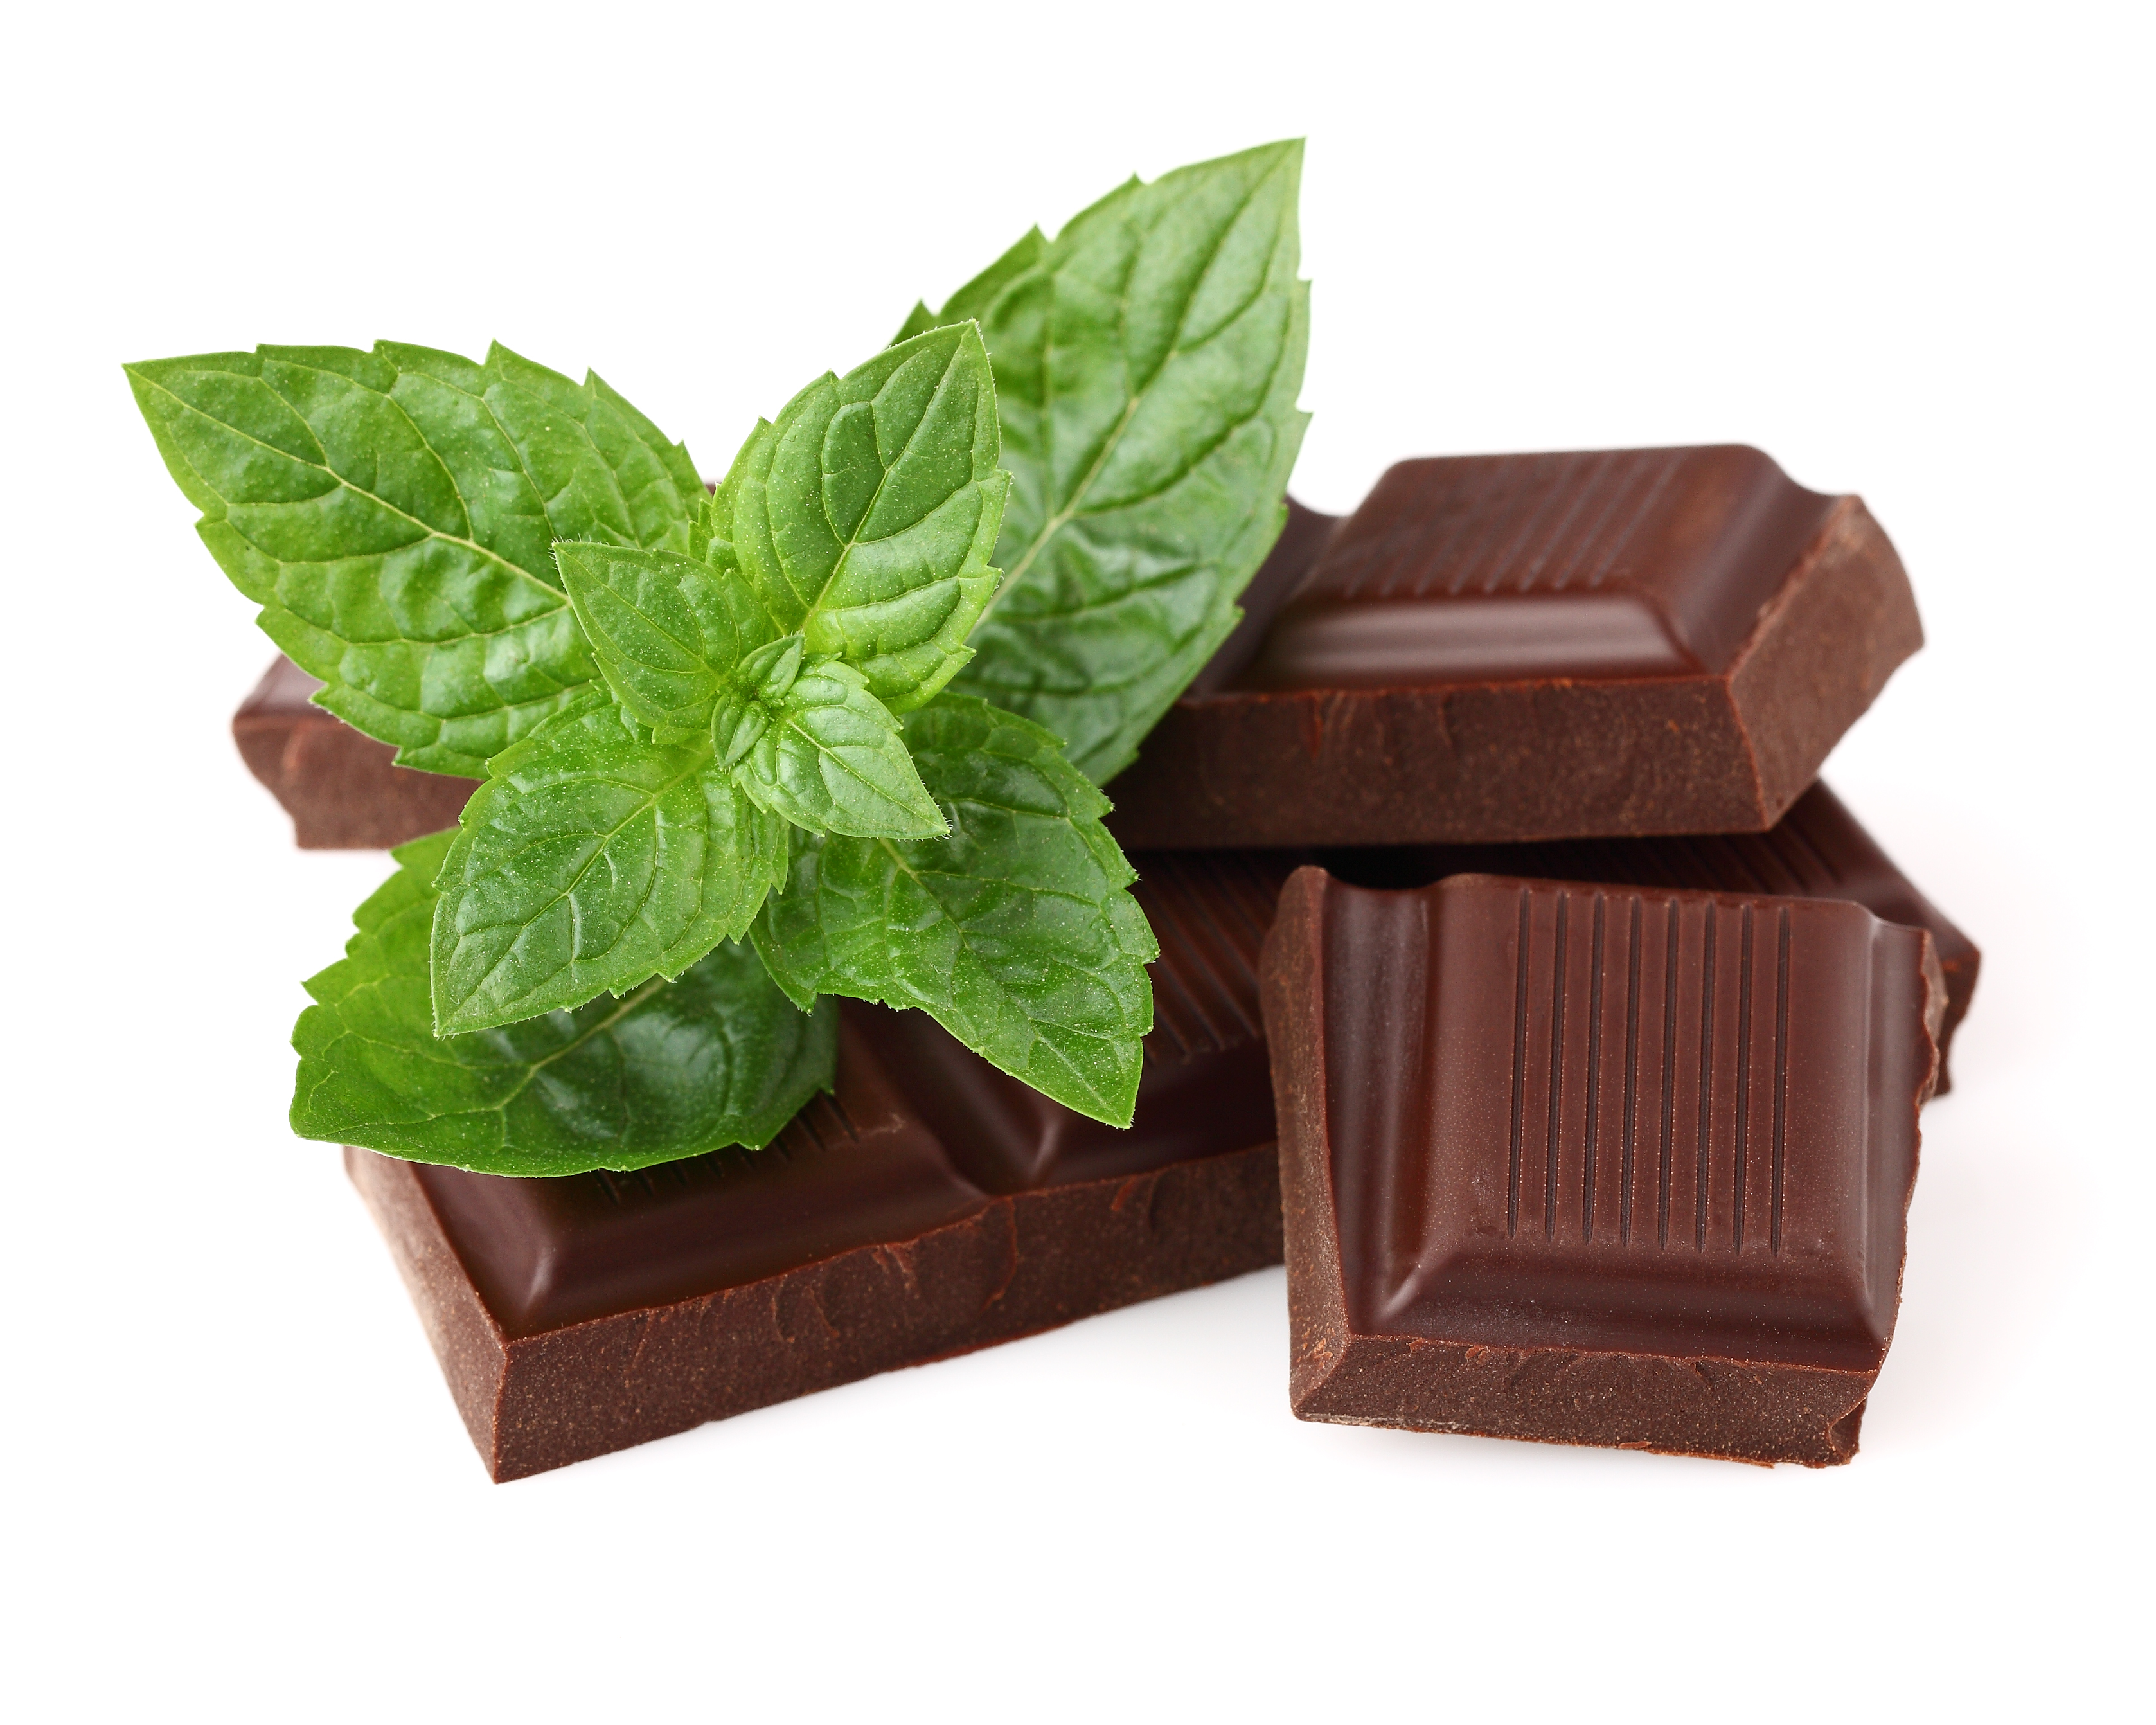 Chocolate with mint